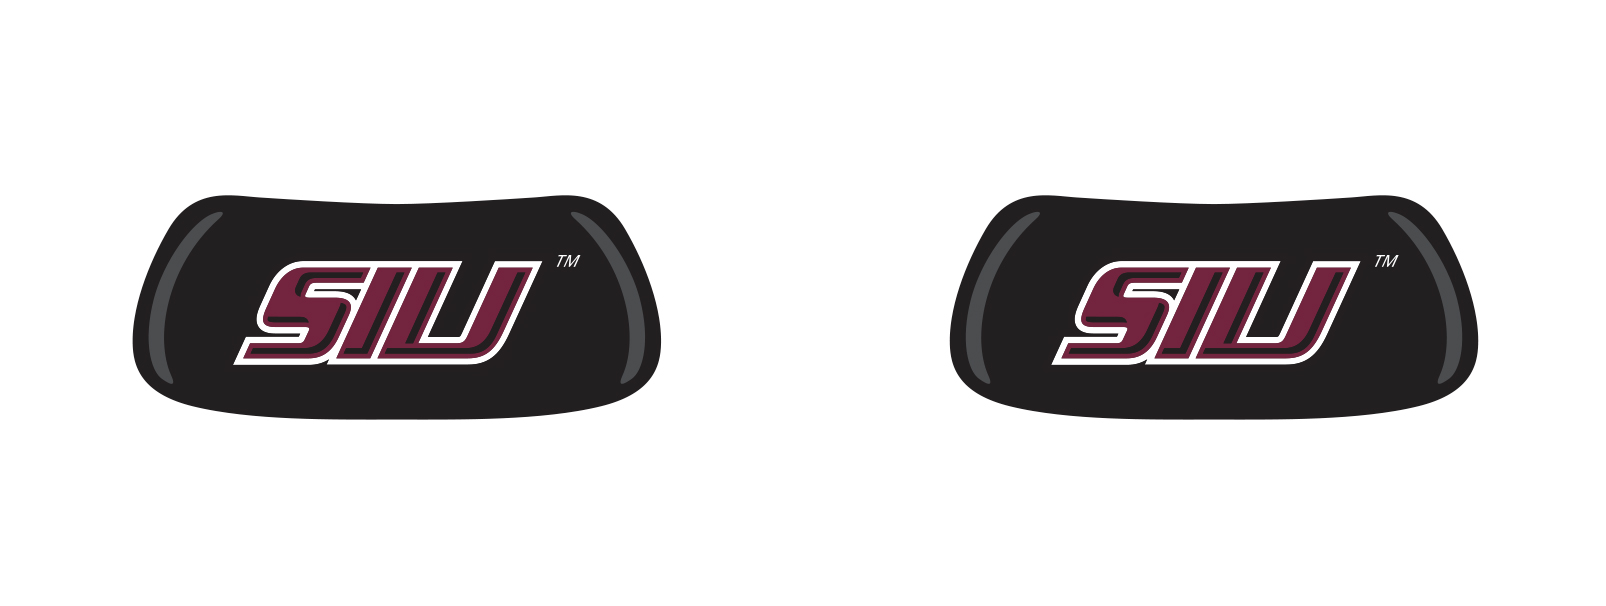 Image for the SIU ATHLETIC UNDER EYE EYEBLACK™    product